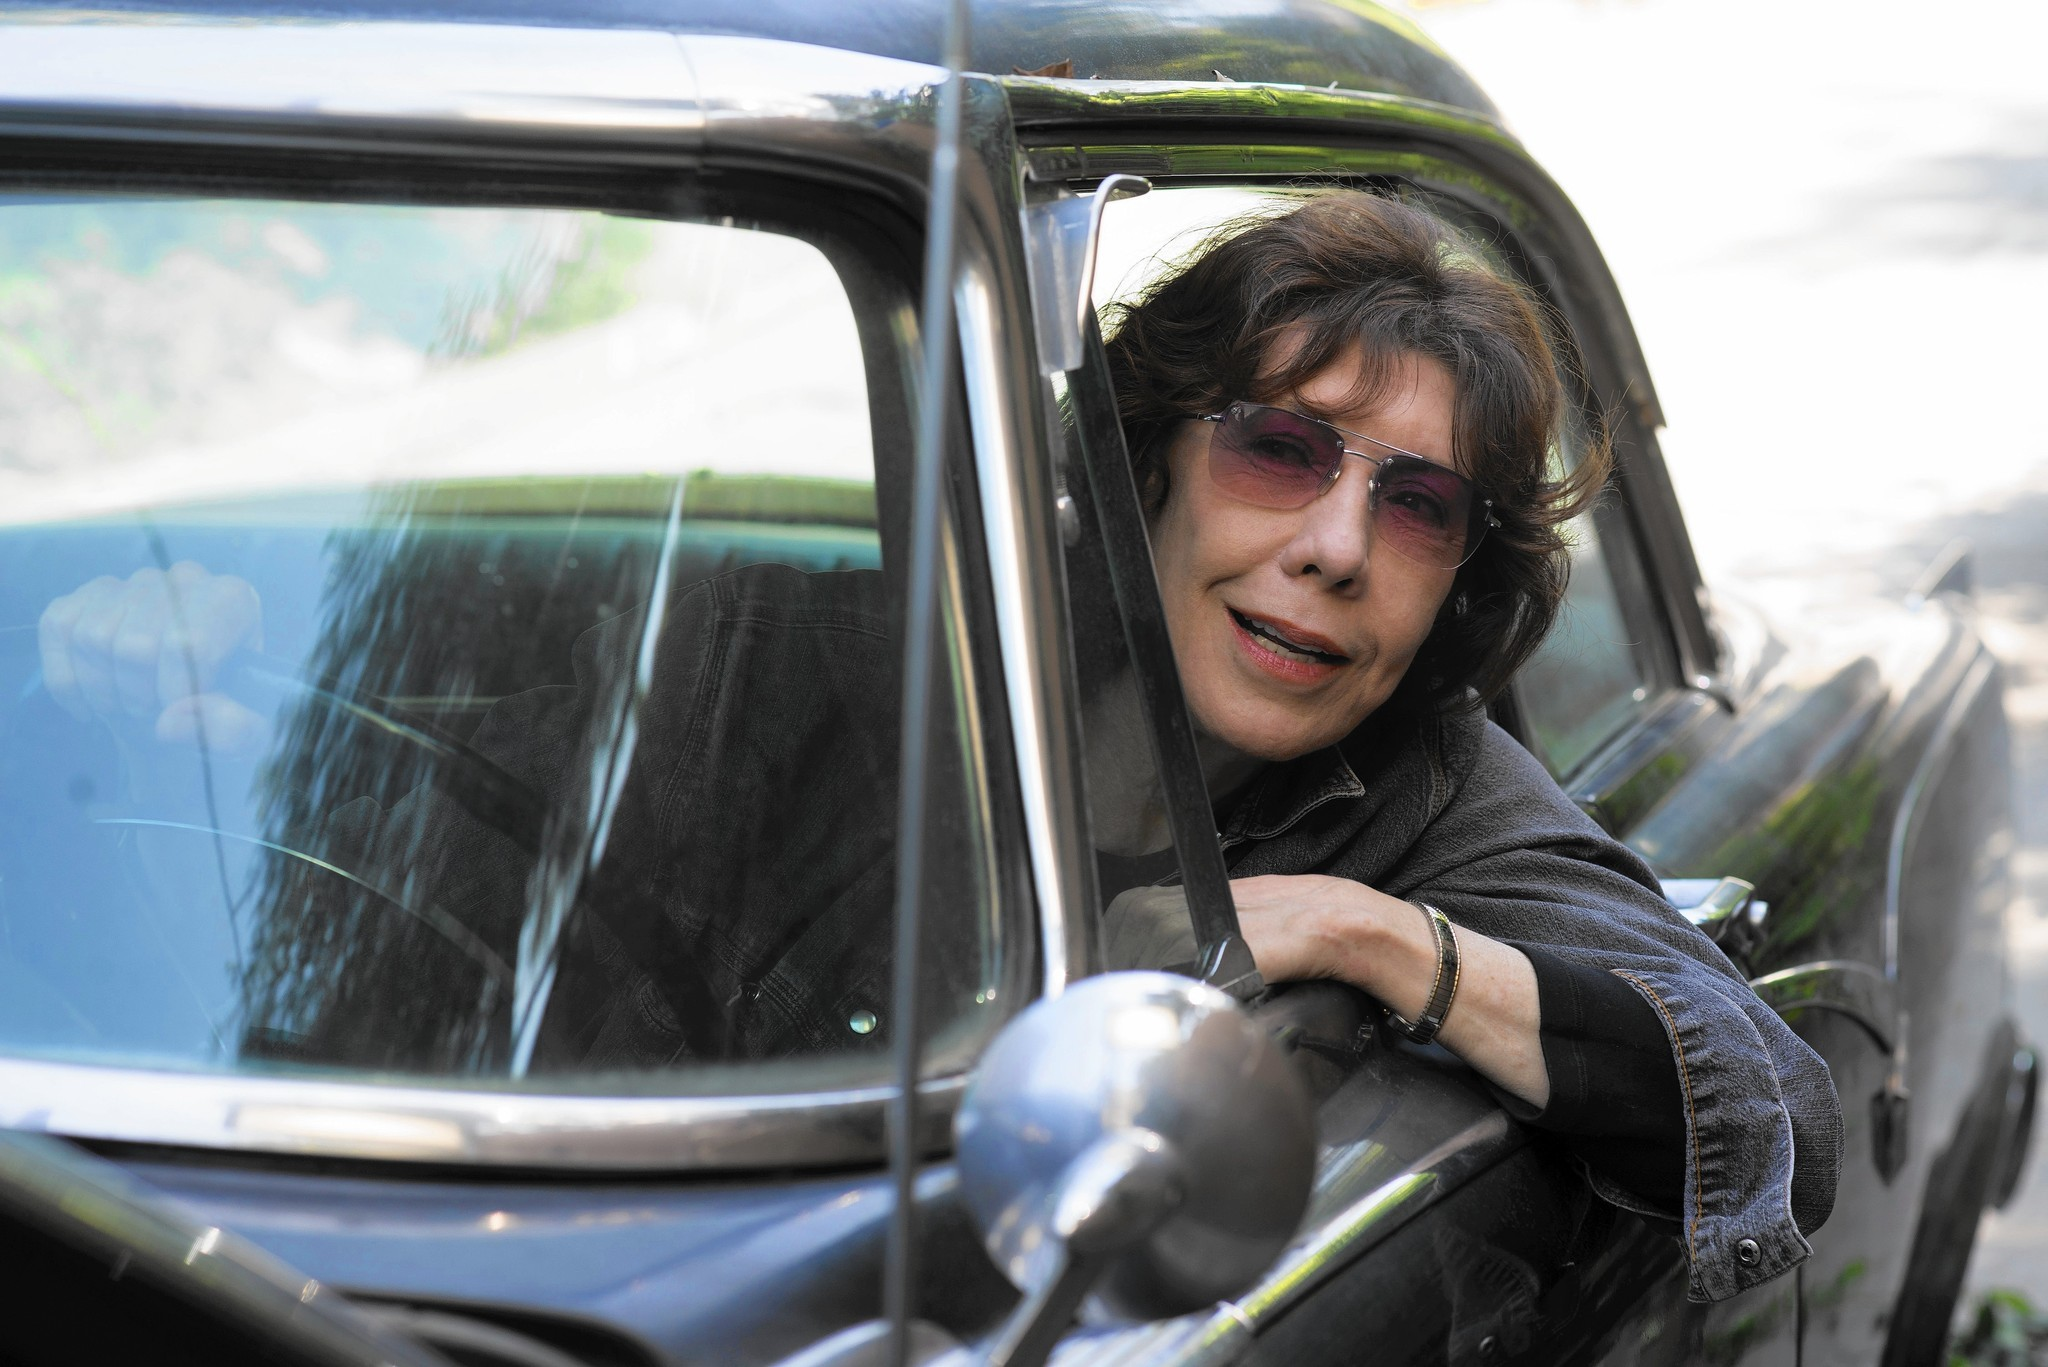 'Grandma' review: Lily Tomlin shines in story of modern family